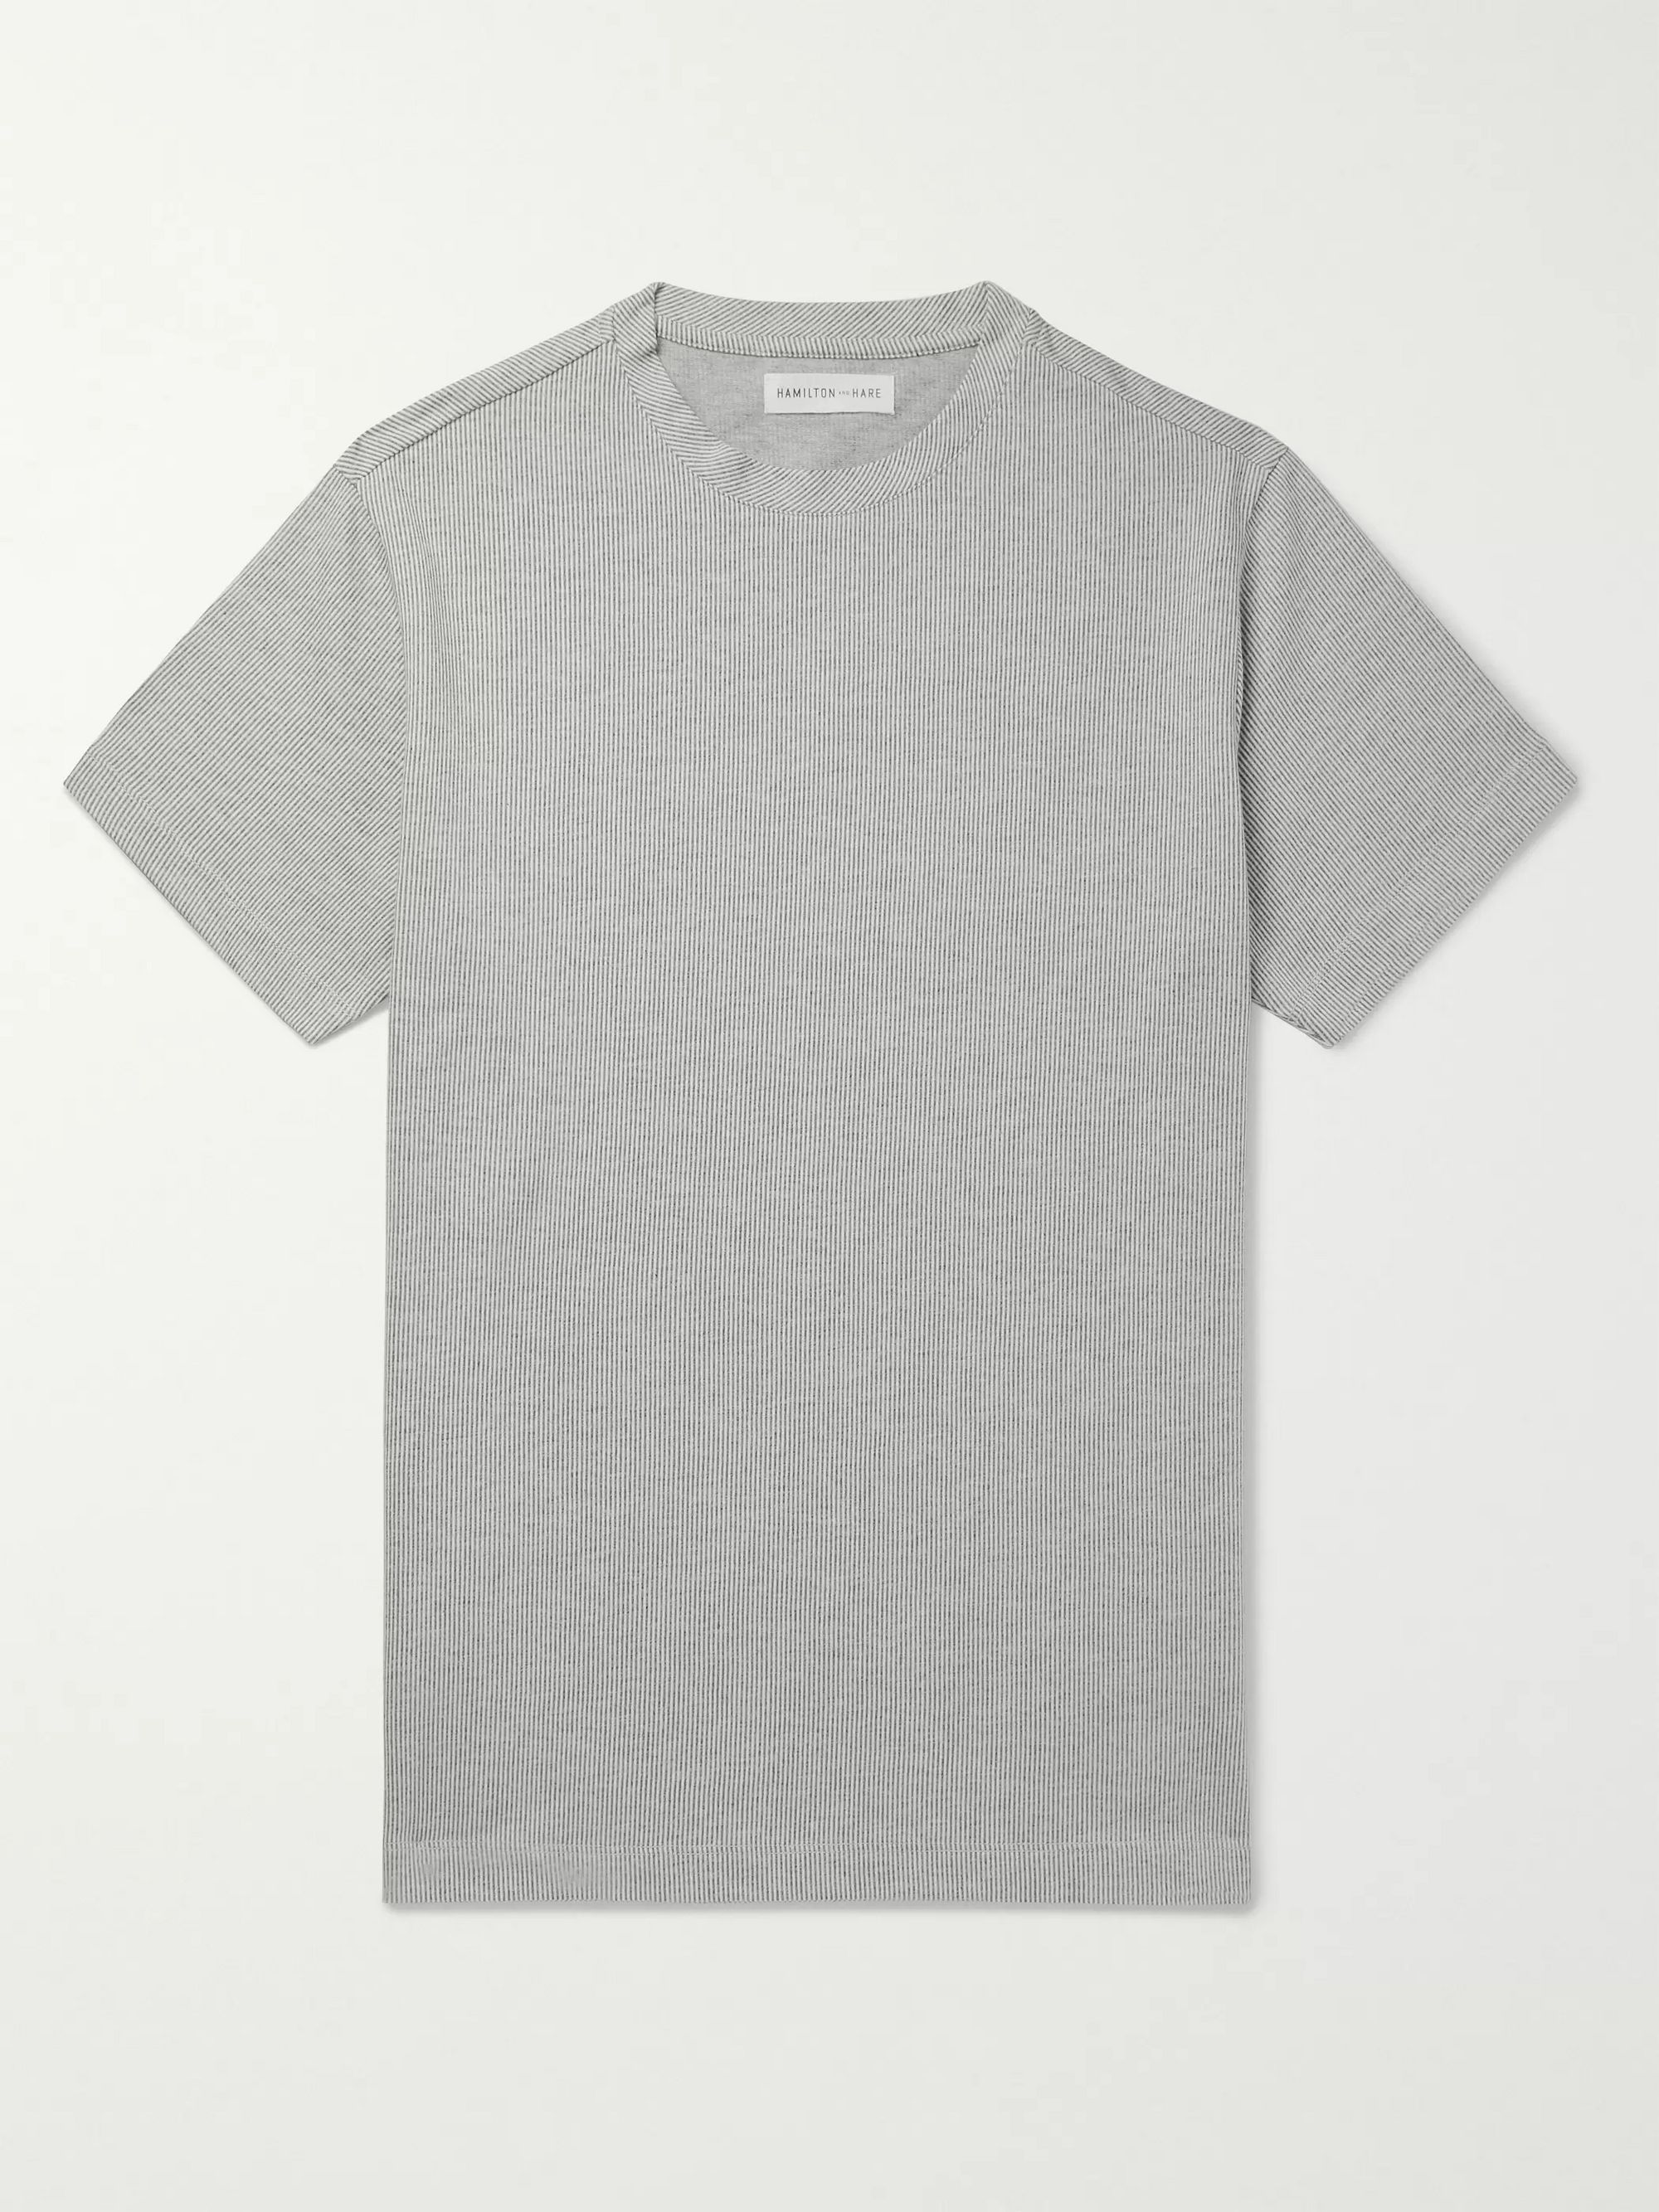 Hamilton and Hare Pinstriped Cotton-Jersey T-Shirt